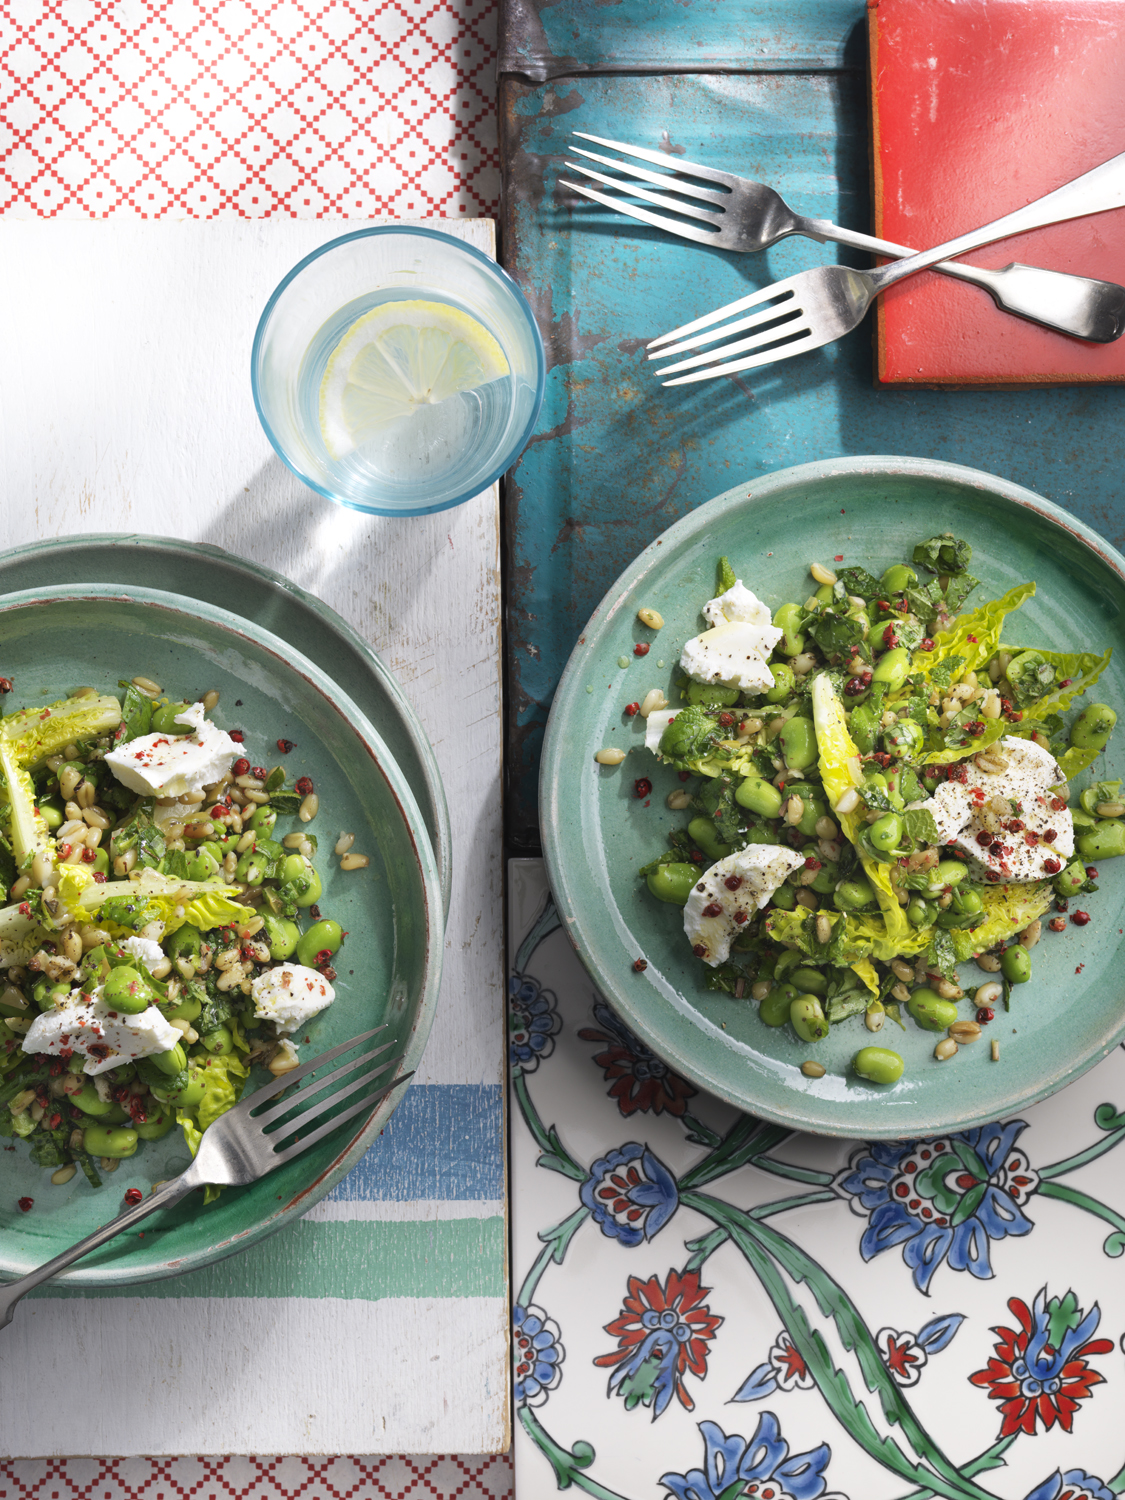 RED_Ottolenghi_May_29.1.14 - 085.jpg